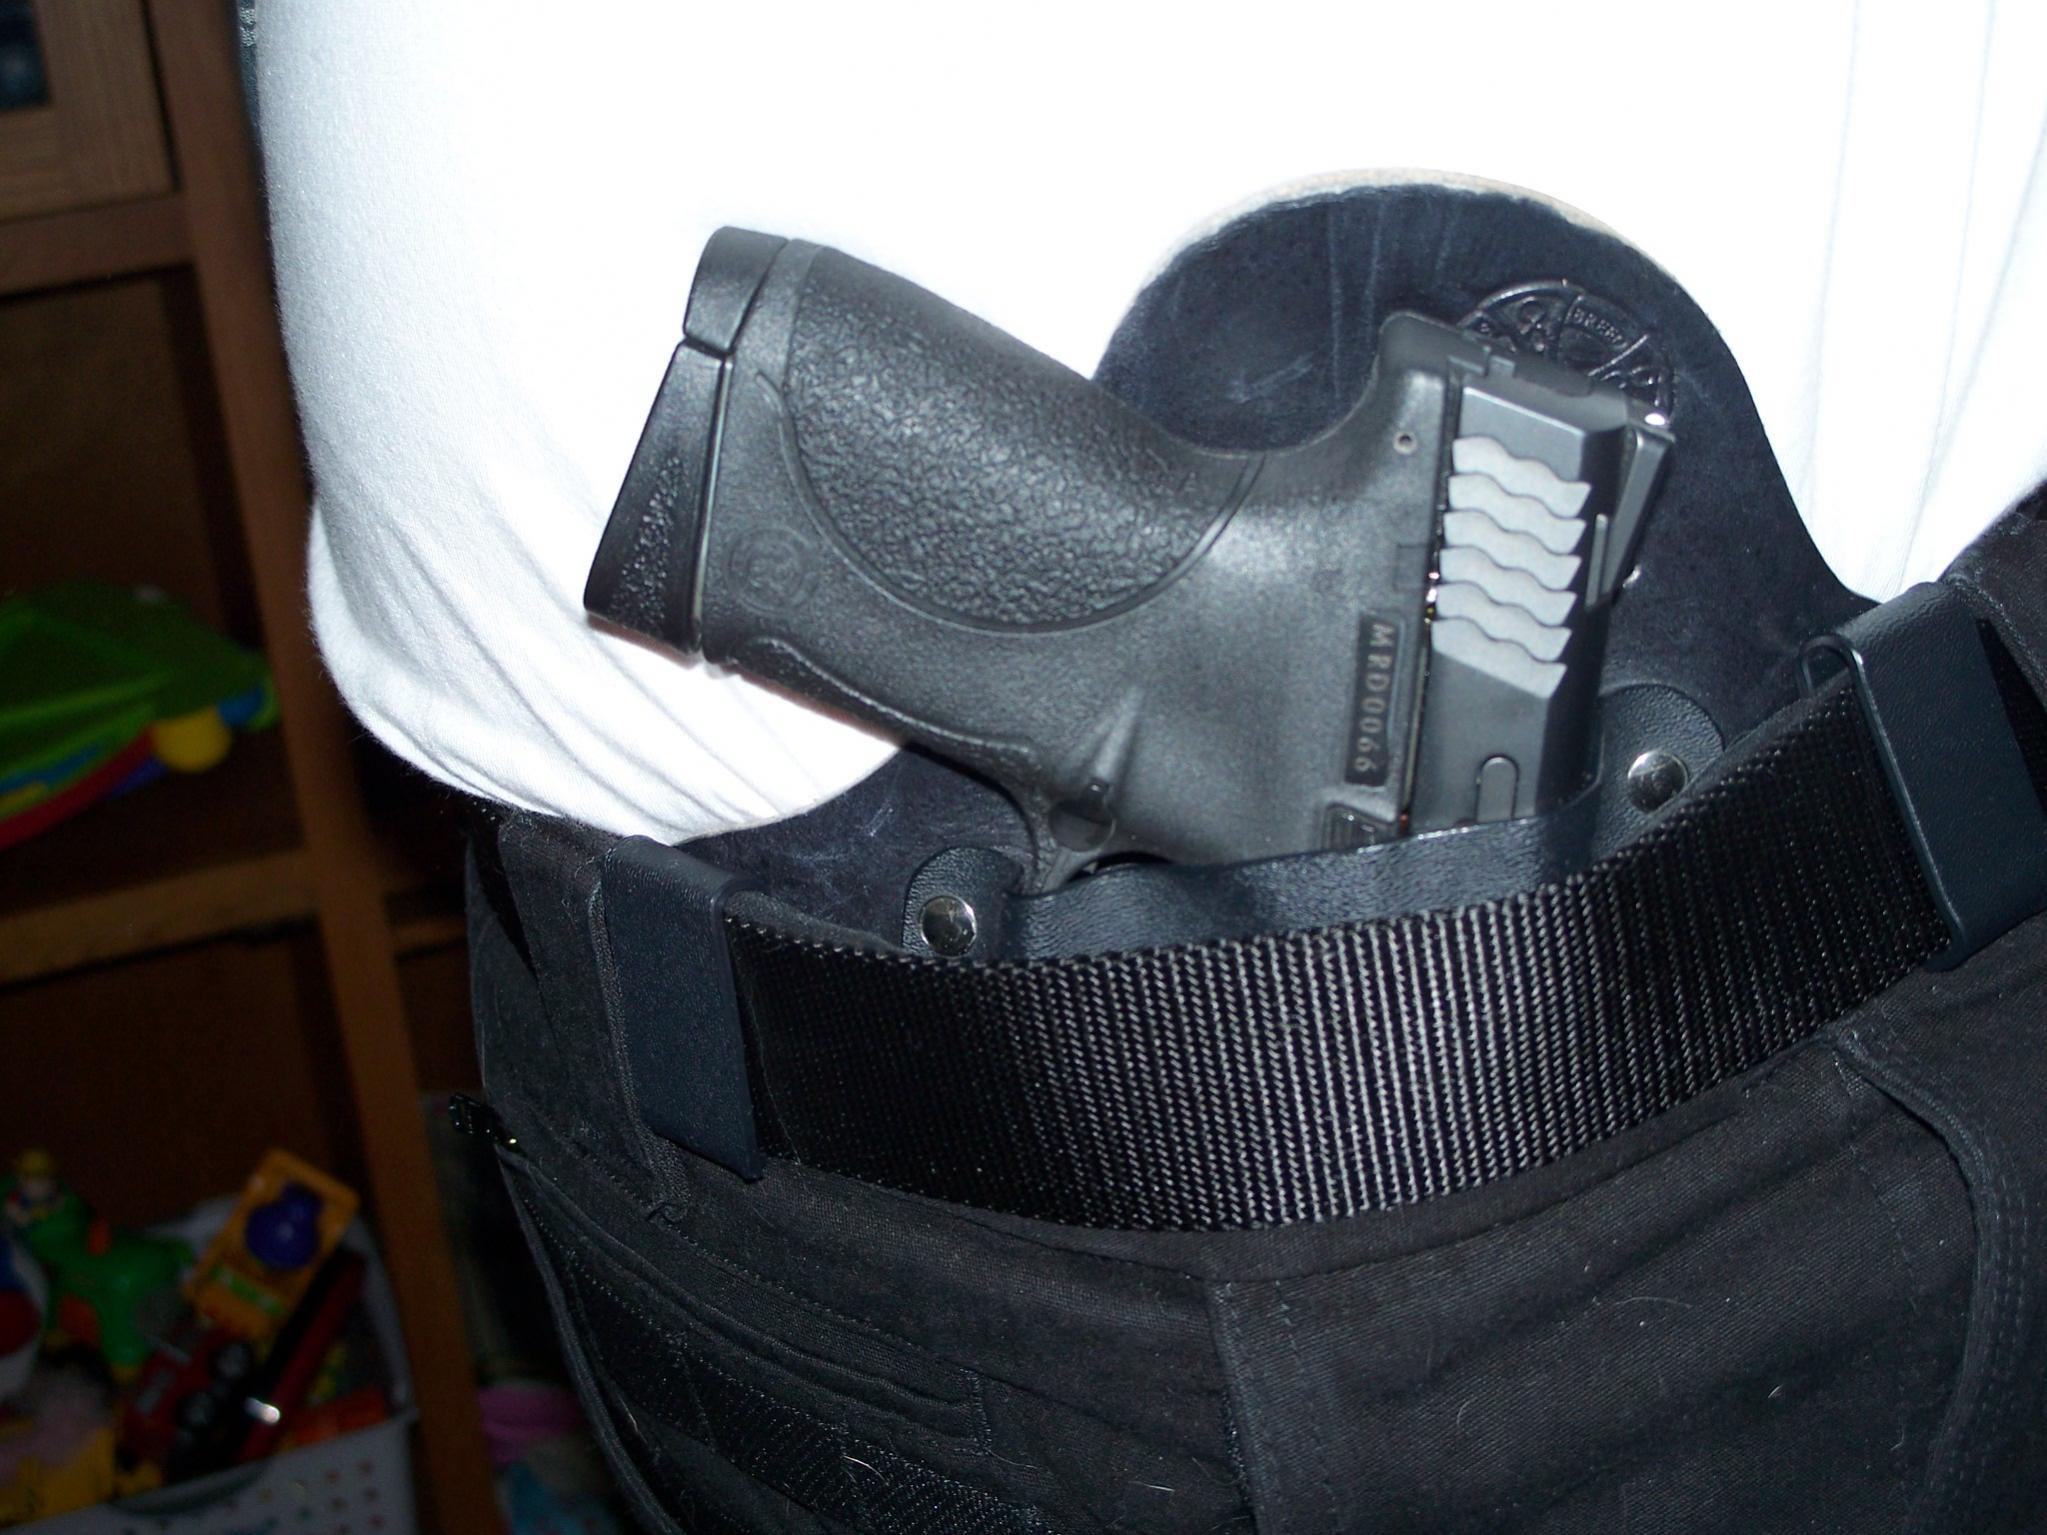 Let's See Your Pic's - How You Carry Concealed.-101_6108.jpg